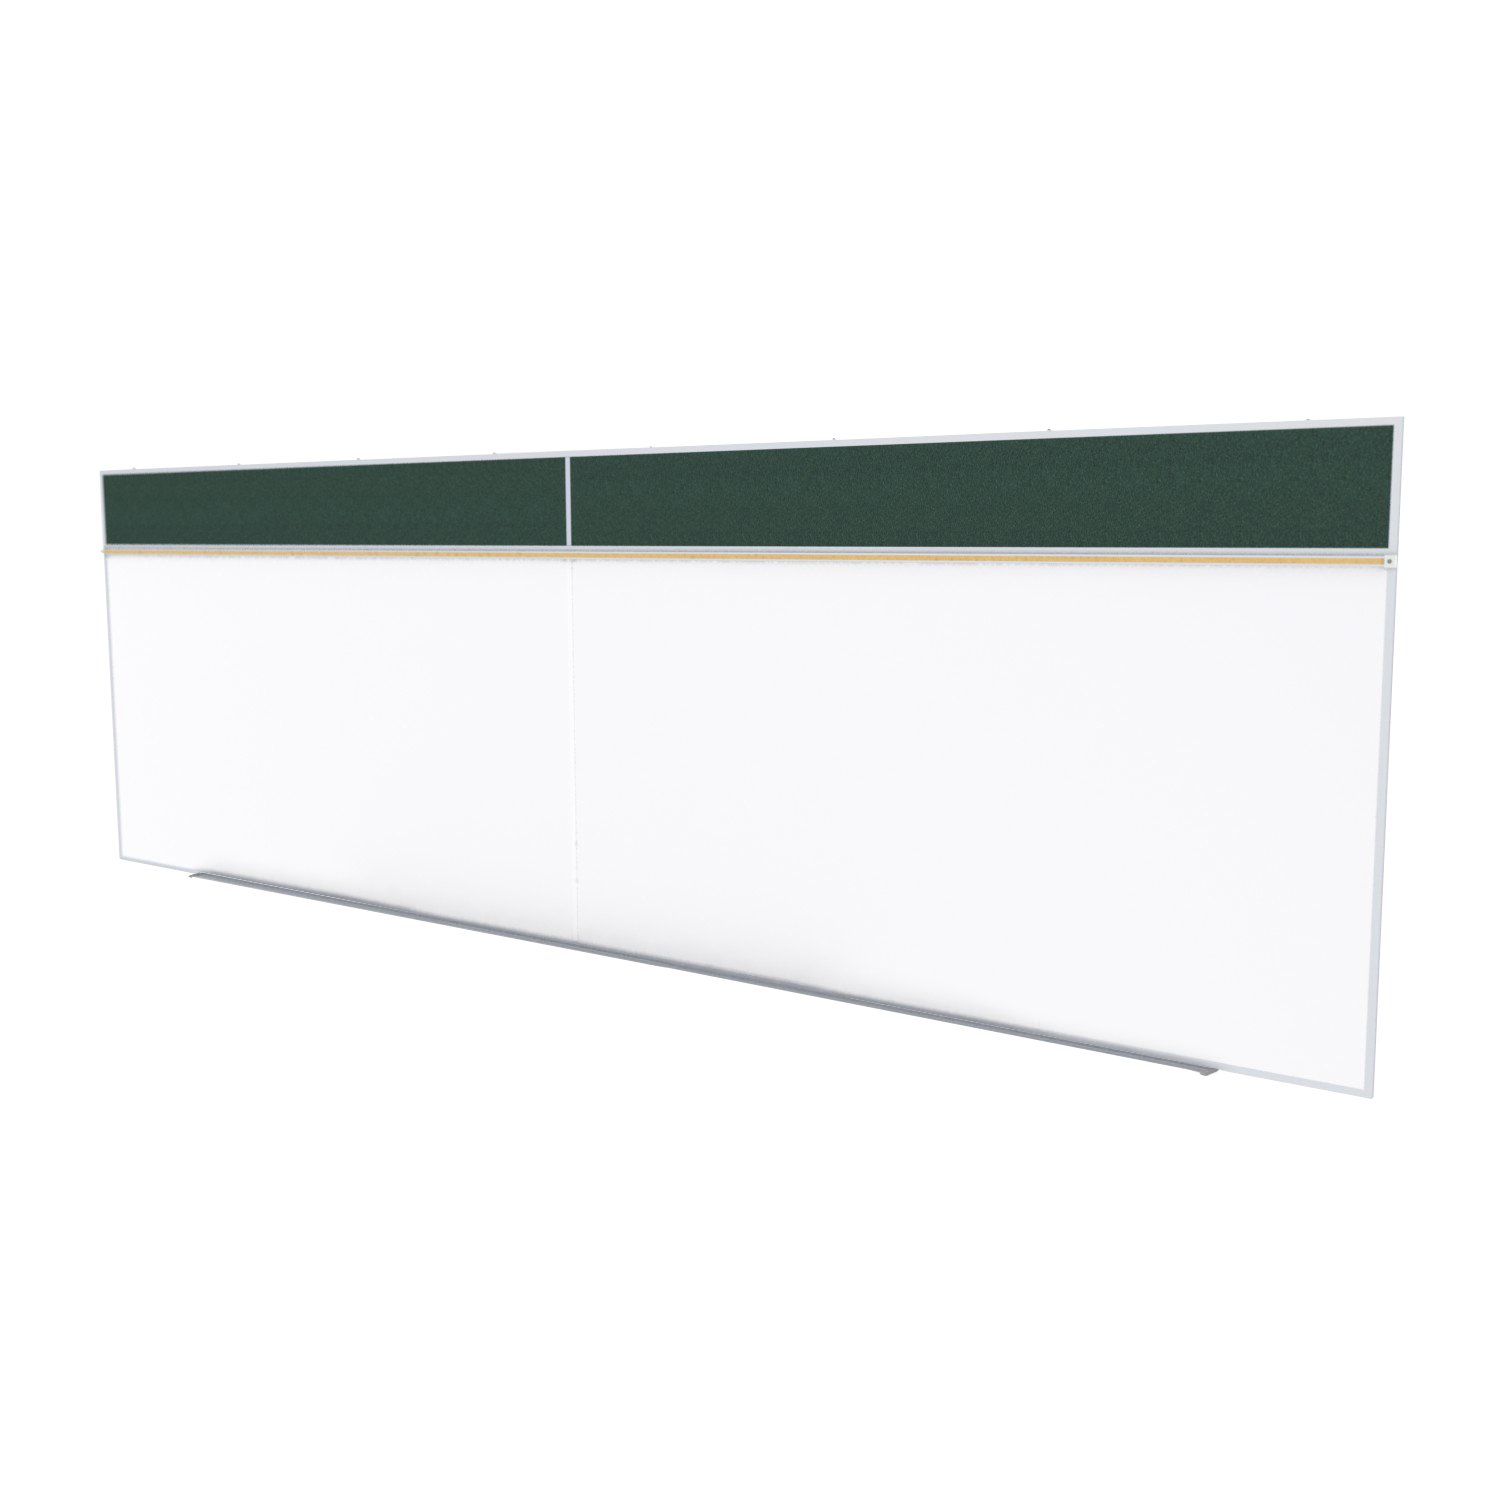 Ghent 5 x 16 Feet Combination Board, Porcelain Magnetic Whiteboard and Vinyl Fabric Bulletin Board, Ebony , Made in the USA